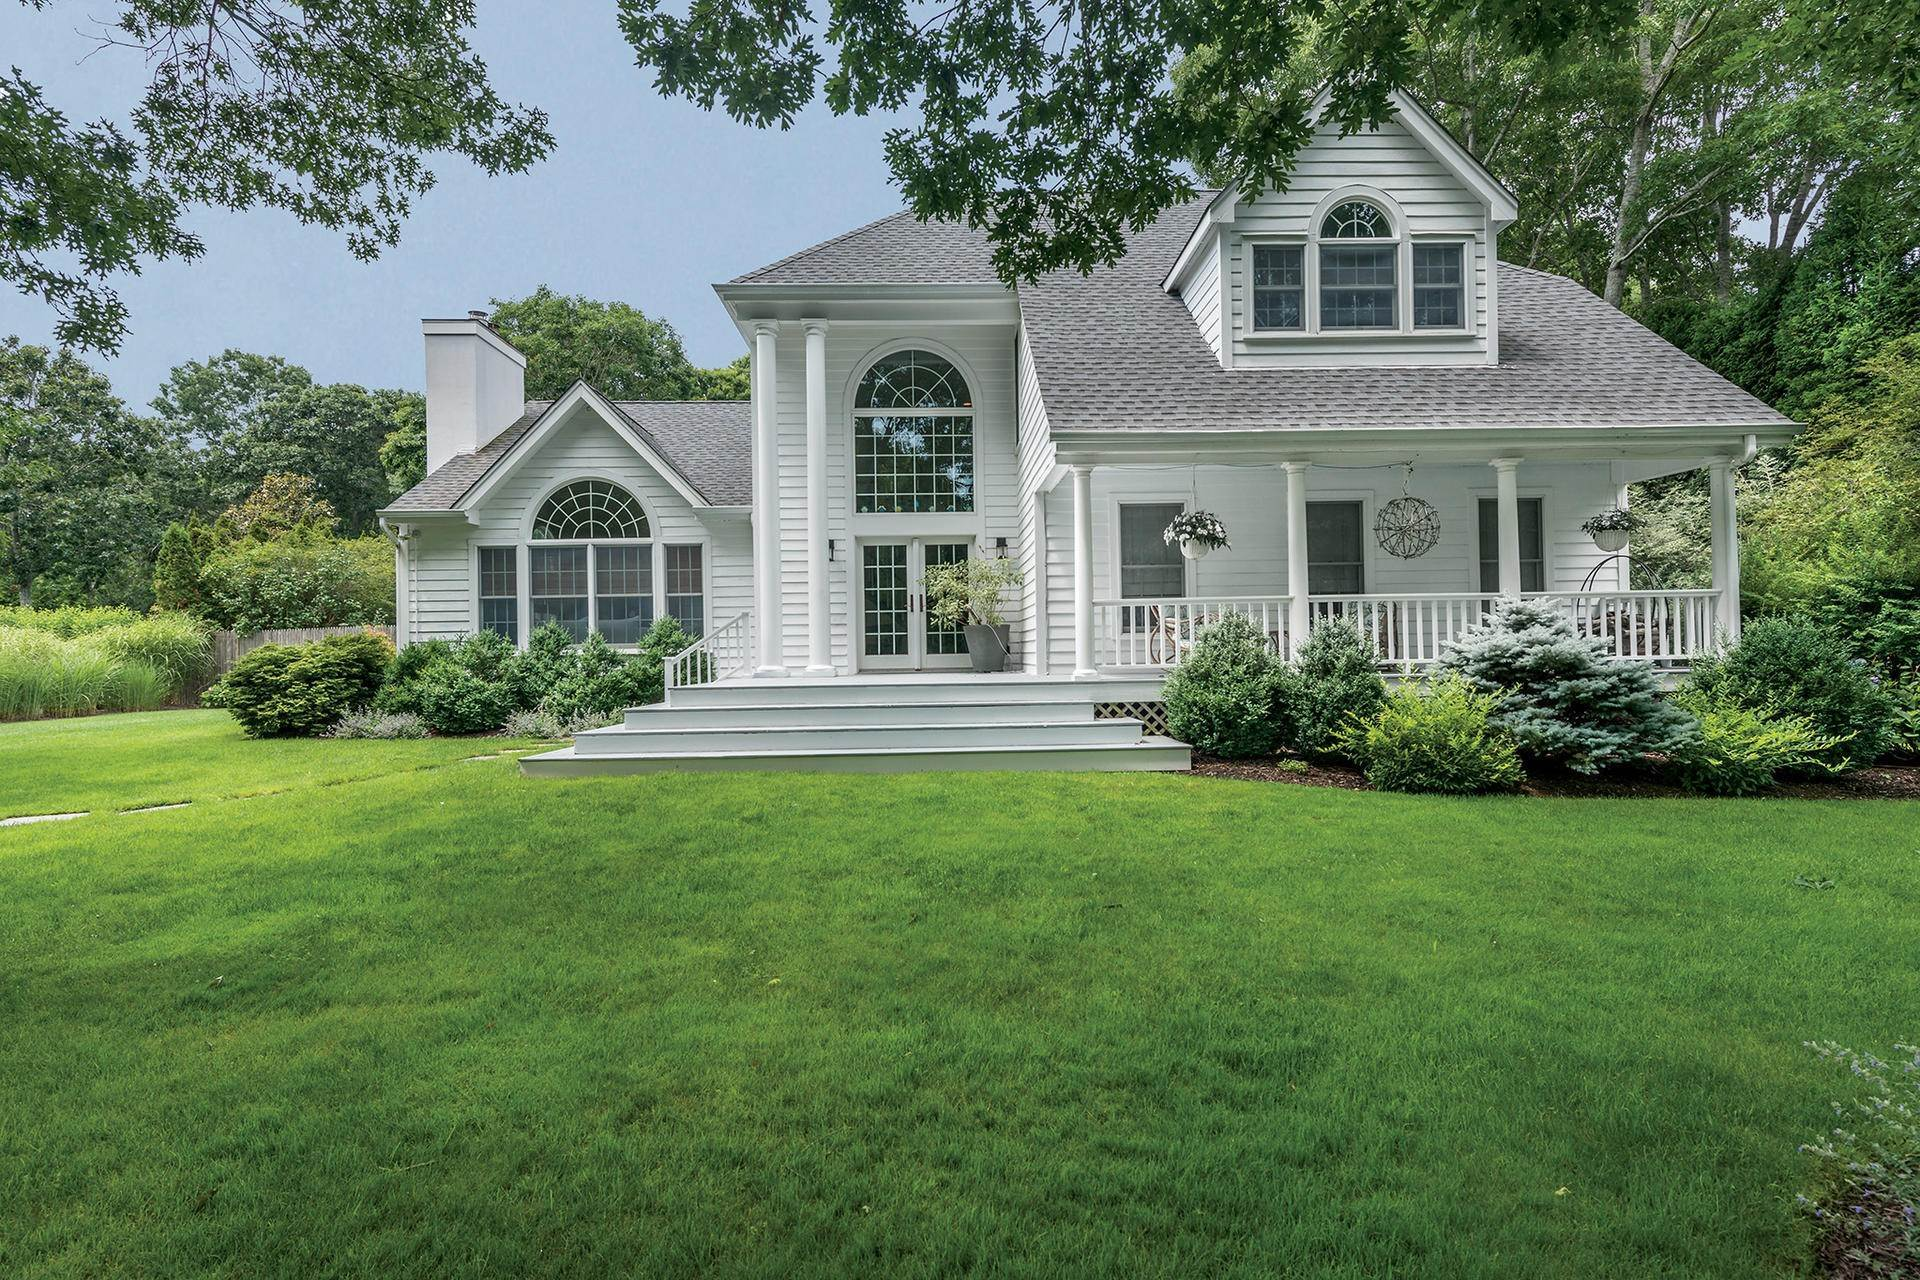 Single Family Homes for Sale at Bridgehampton Ideal: Style, Substance And Setting 21 Woodruff Lane, Bridgehampton, Southampton Town, NY 11932